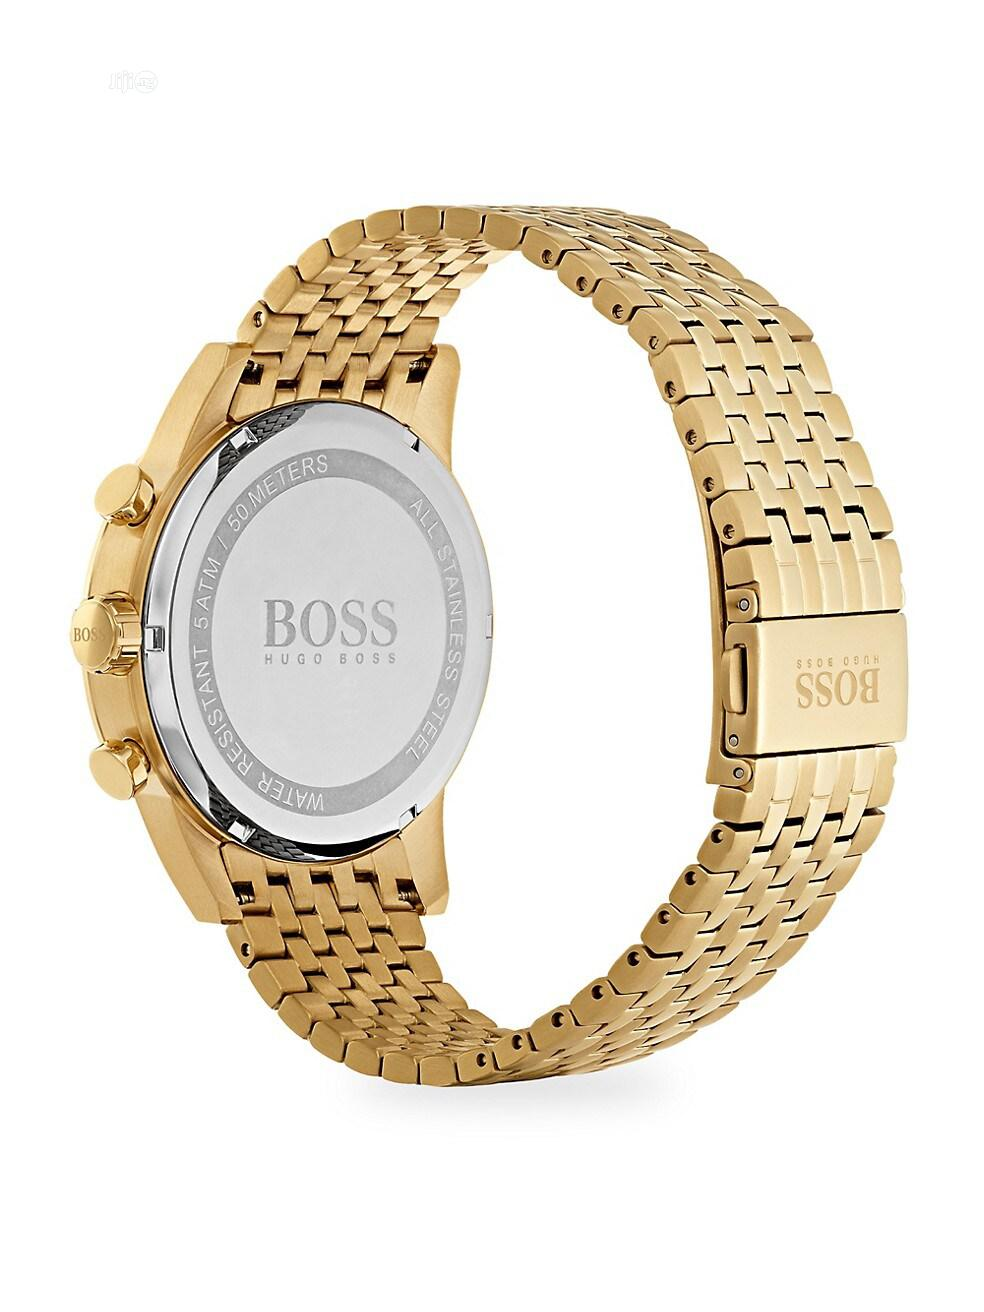 Top Quality Hugo Boss Stainless Steel Watch | Watches for sale in Magodo, Lagos State, Nigeria